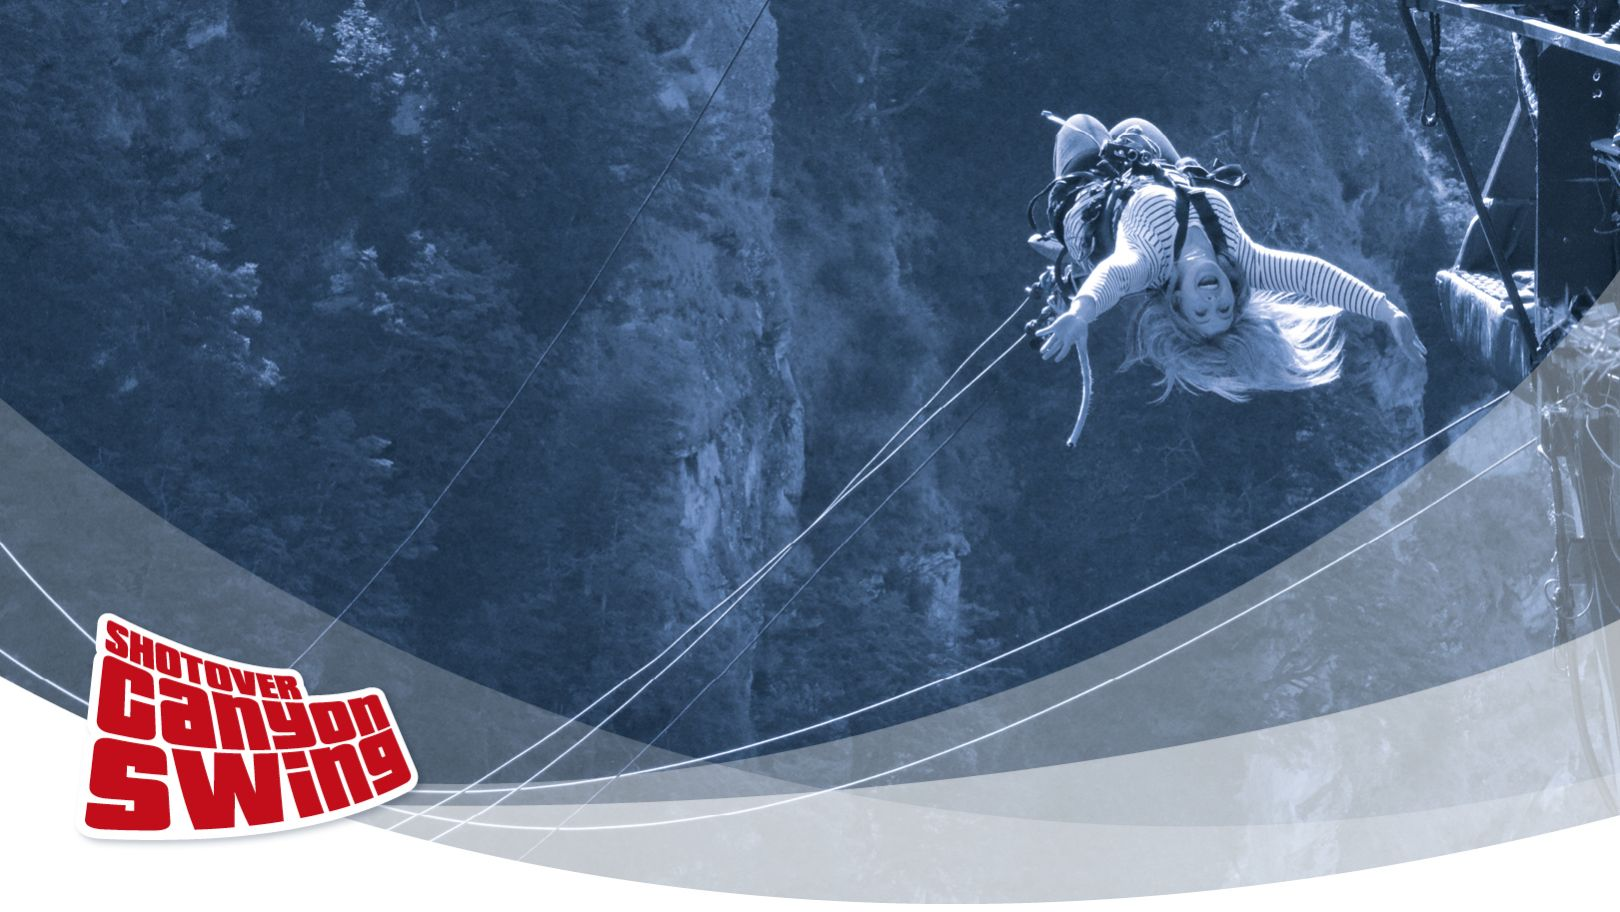 Shotover Canyon Swing header